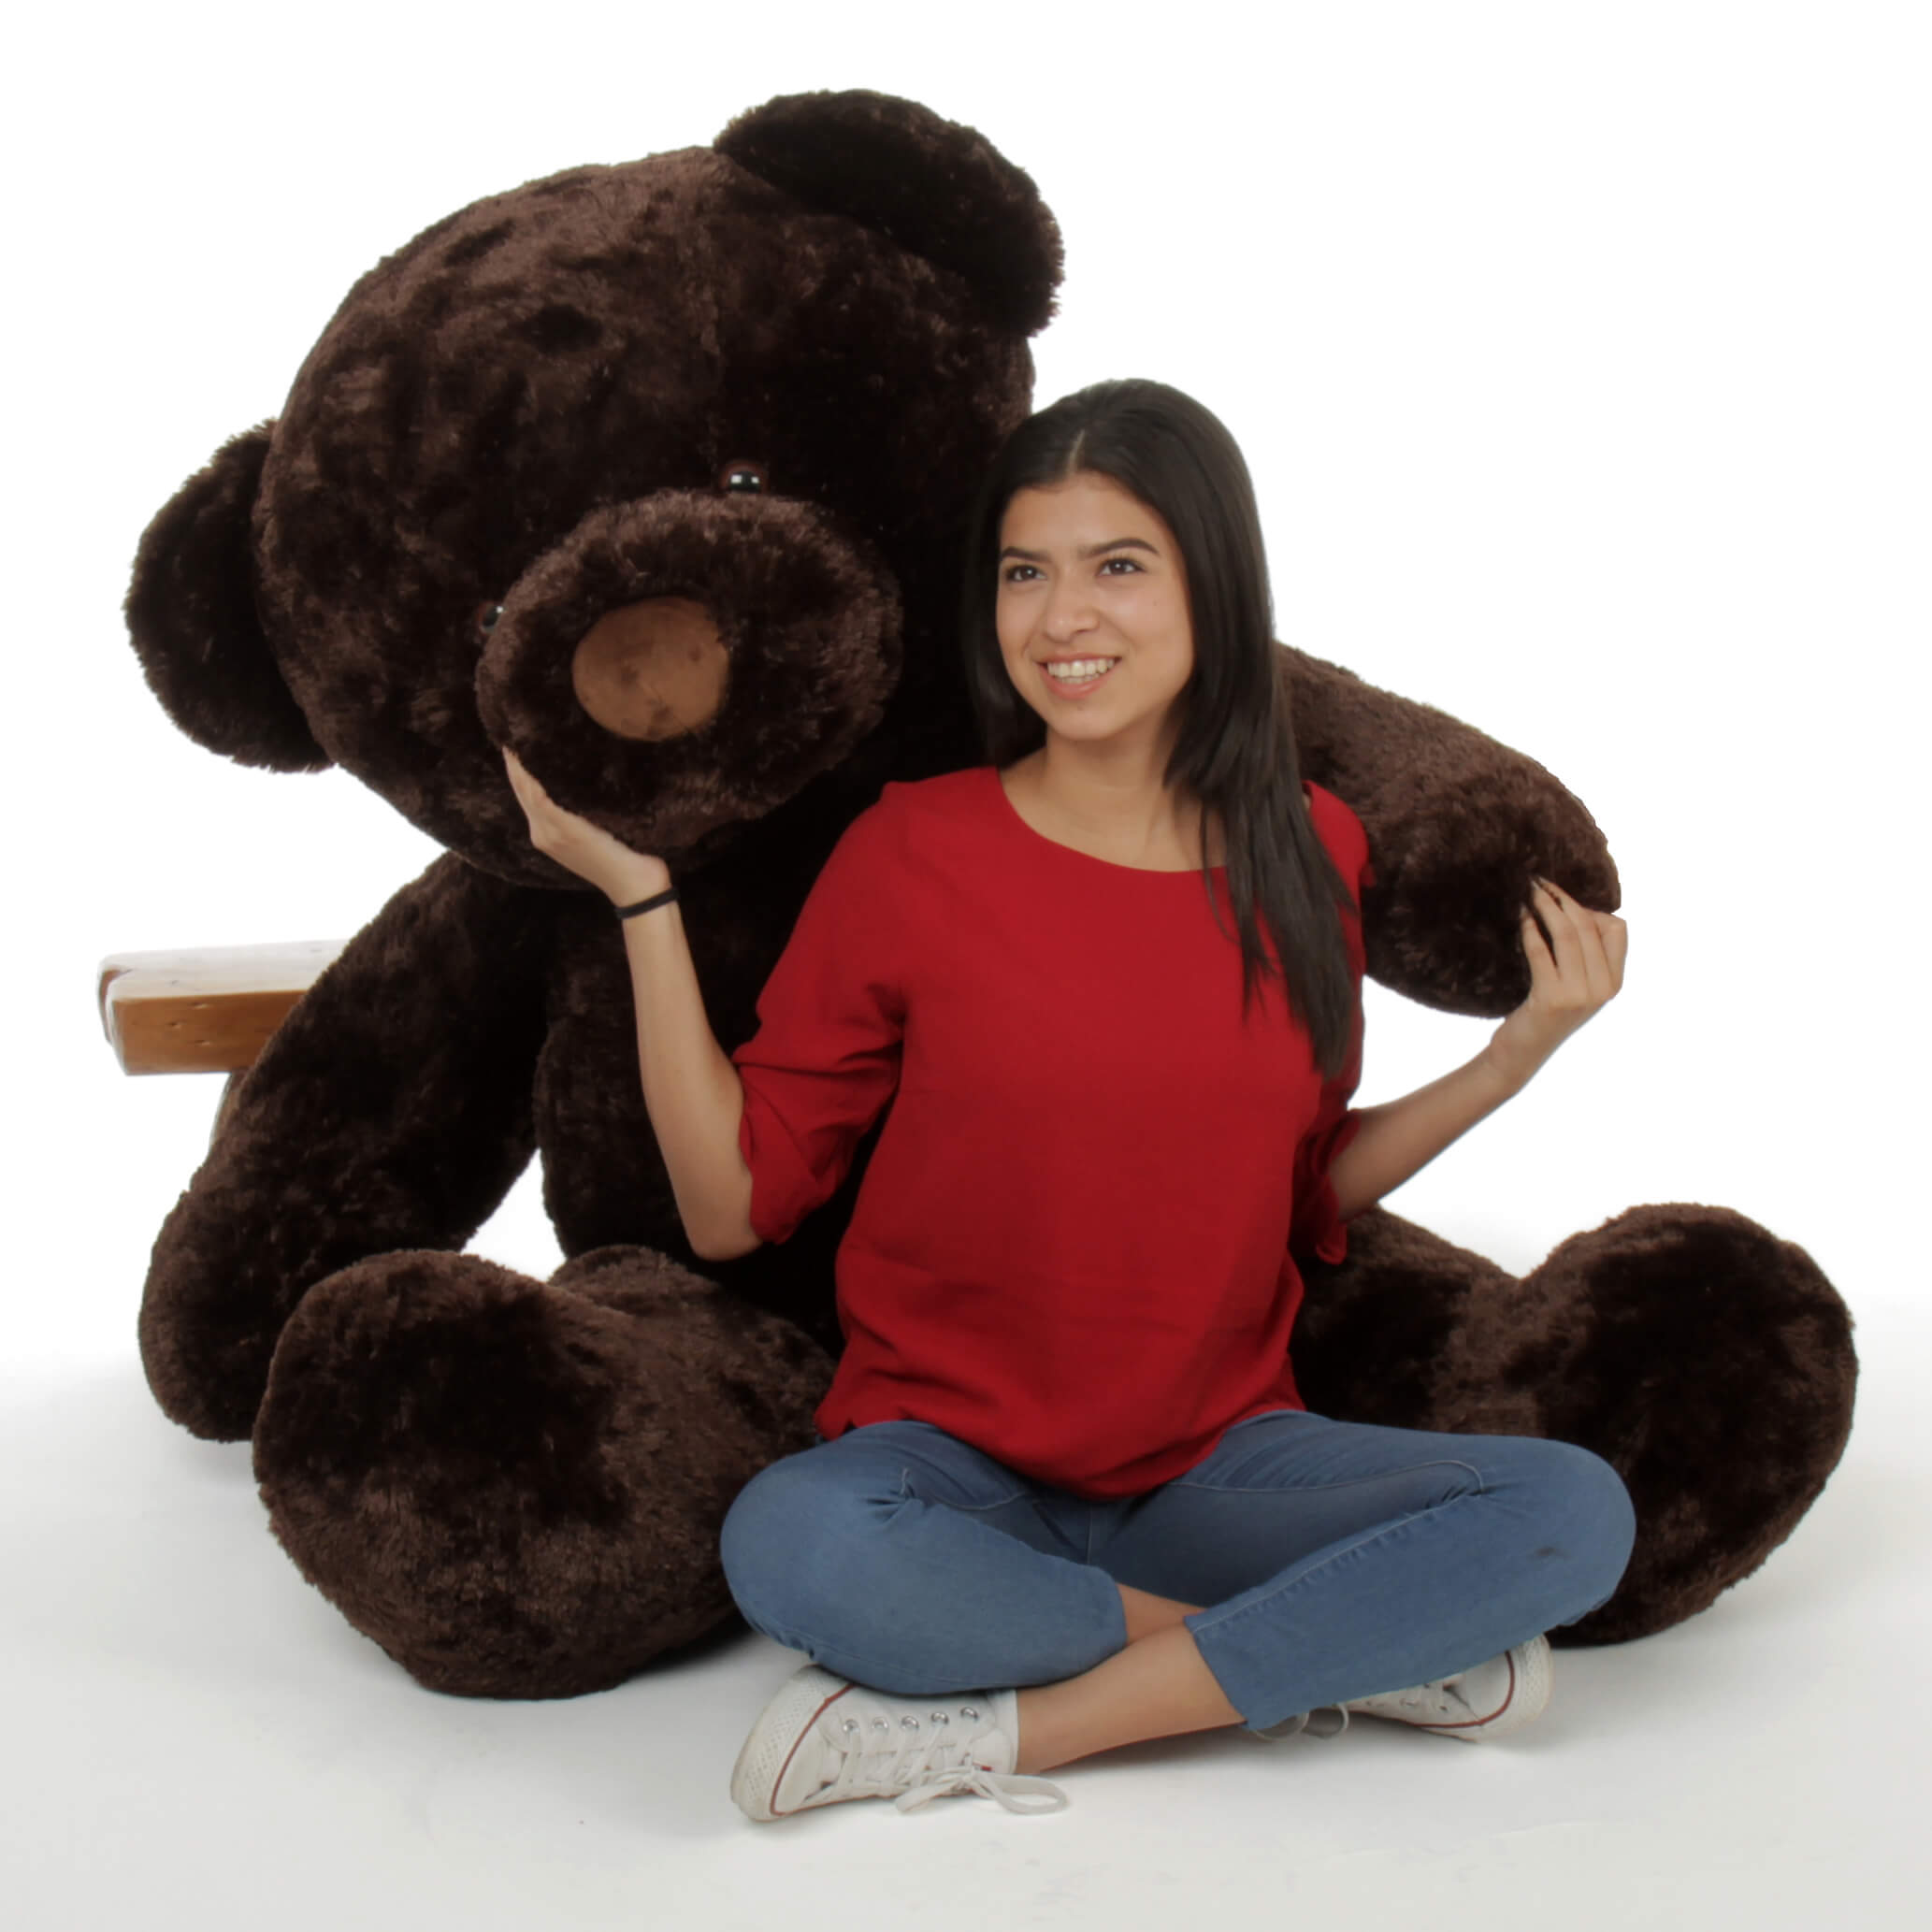 life-size-giant-teddy-bear-awesomeness-60n-soft-dark-brown-fur-munchkin-chubs-gift-to-remember-forever-1.jpg